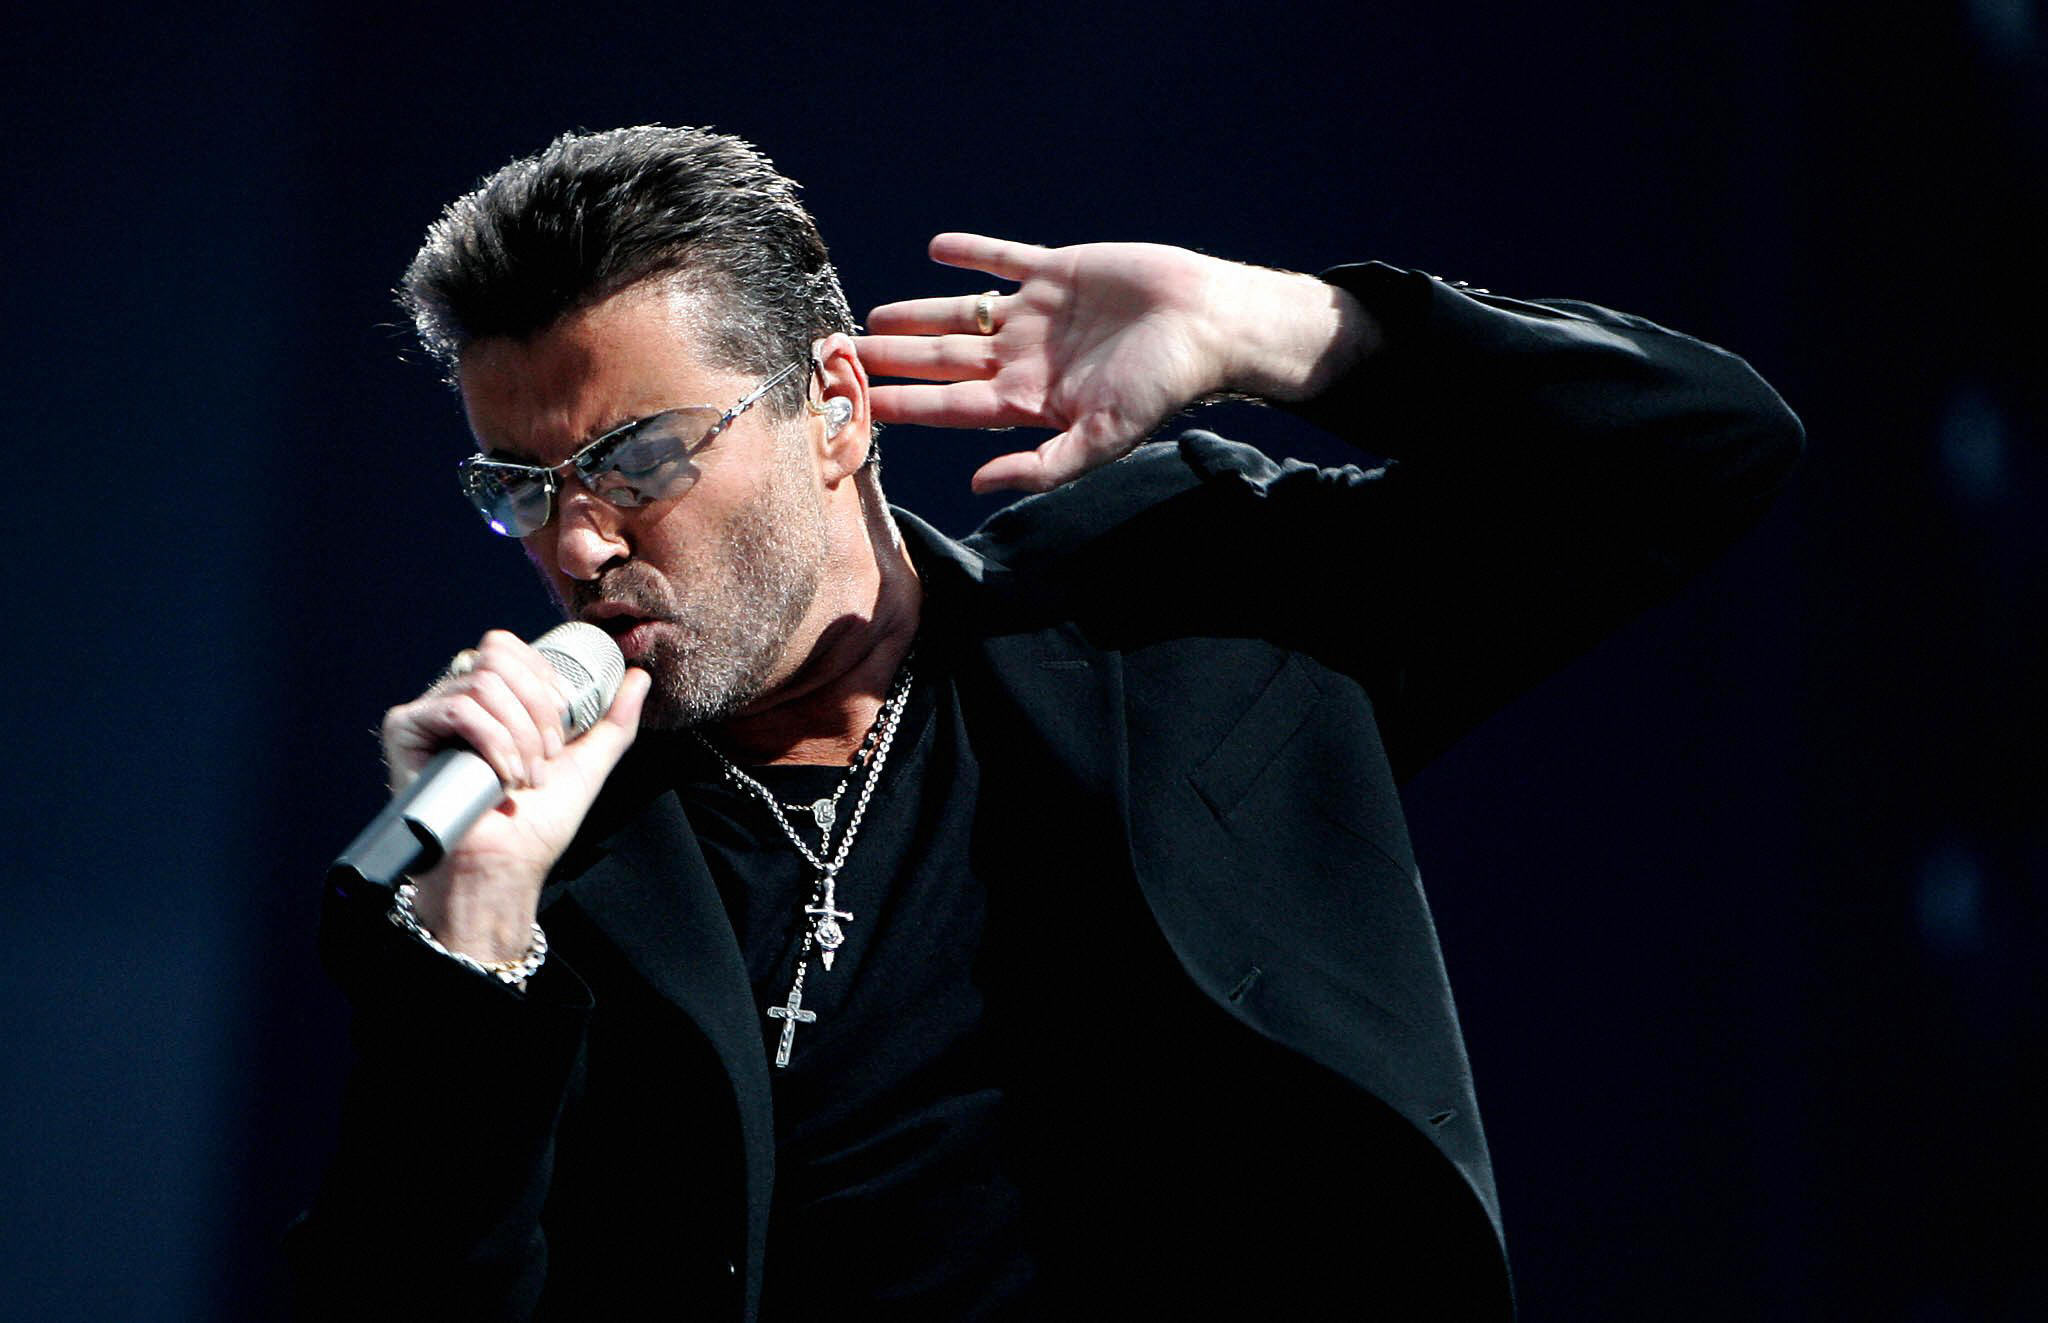 British singer George Michael performs during a concert in Amsterdam, 26 June 2007.